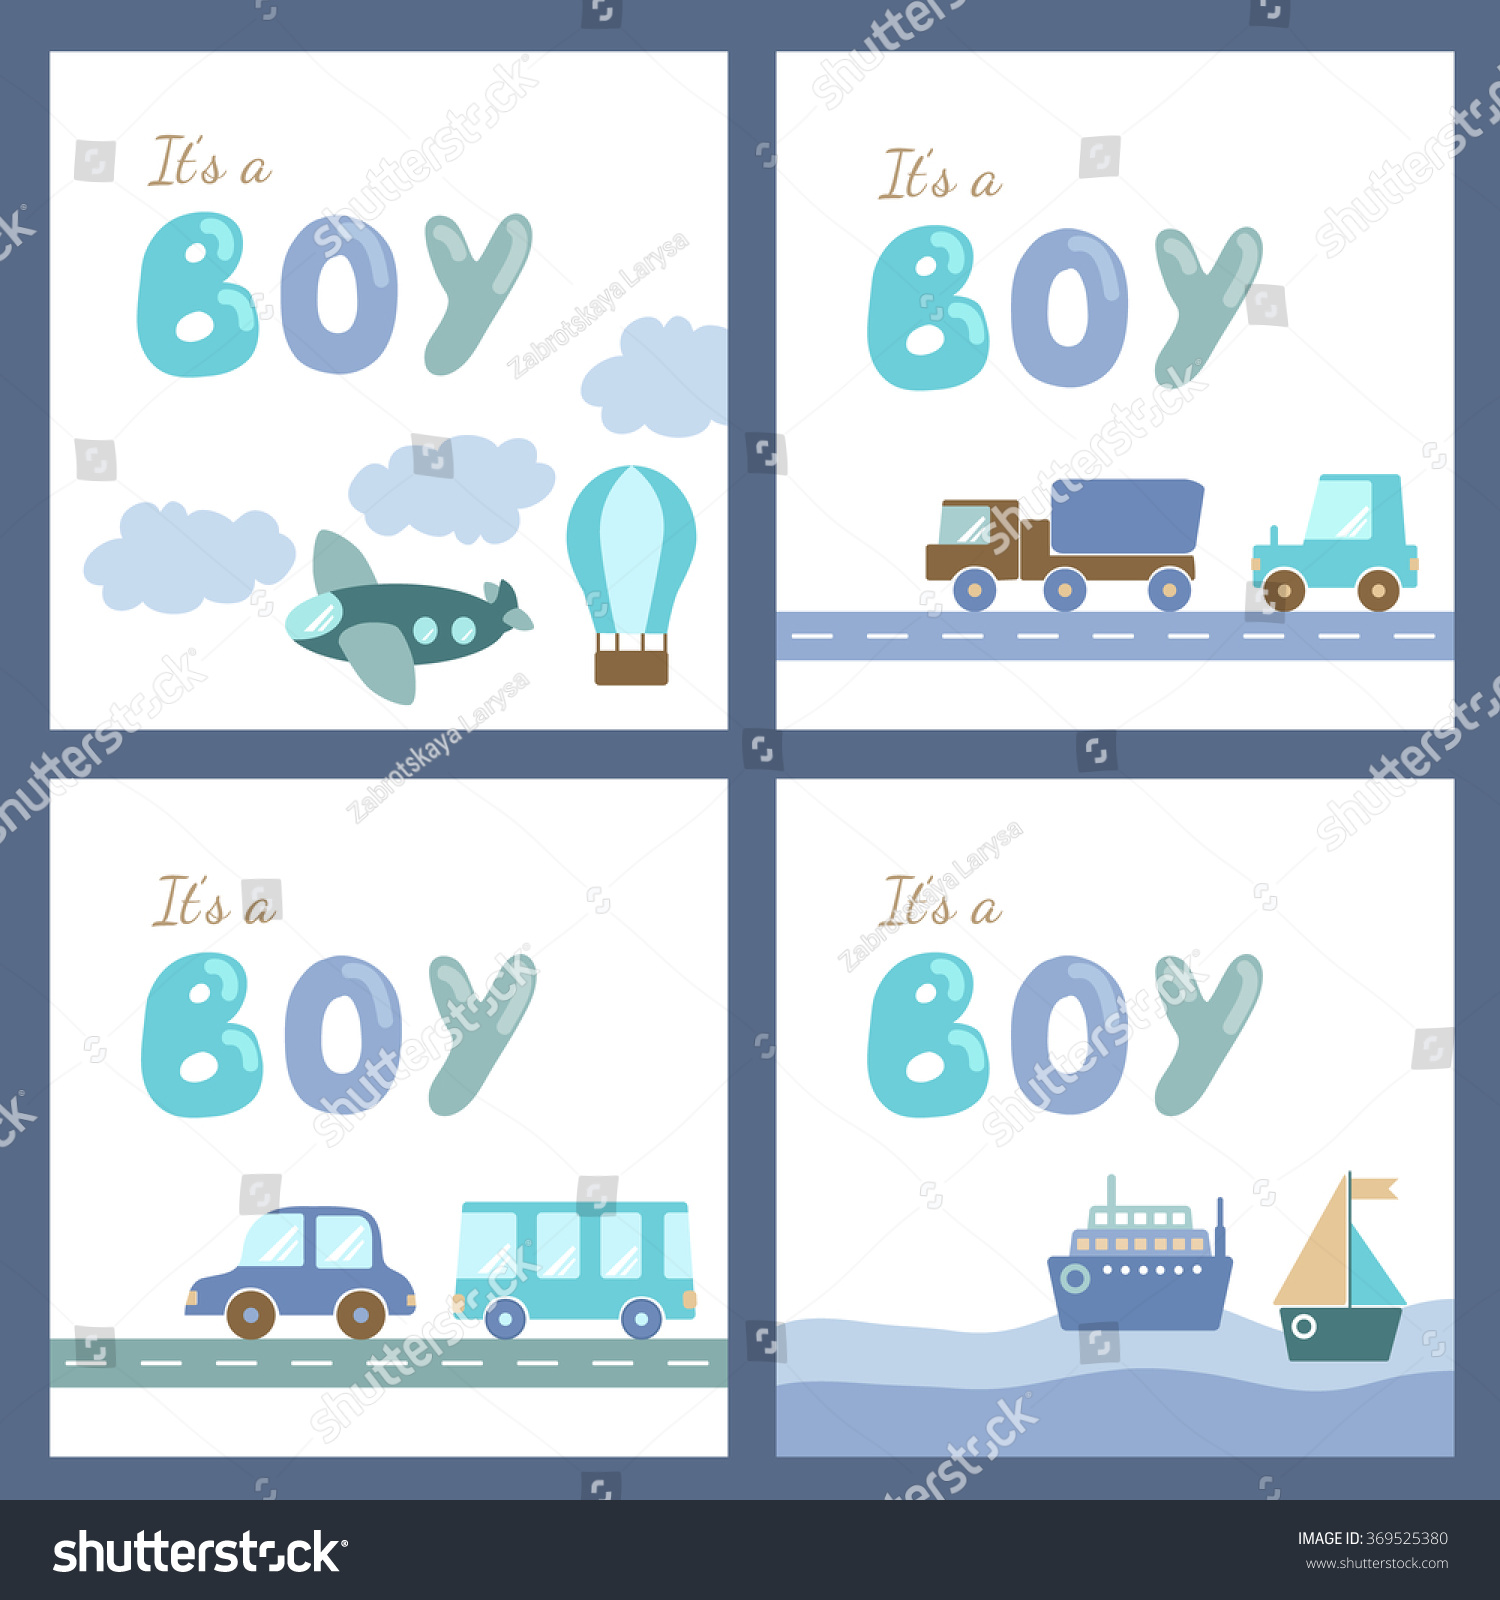 baby boy shower cards template set stock vector 369525380 baby boy shower cards template set holiday card design transport and hand drawn letters